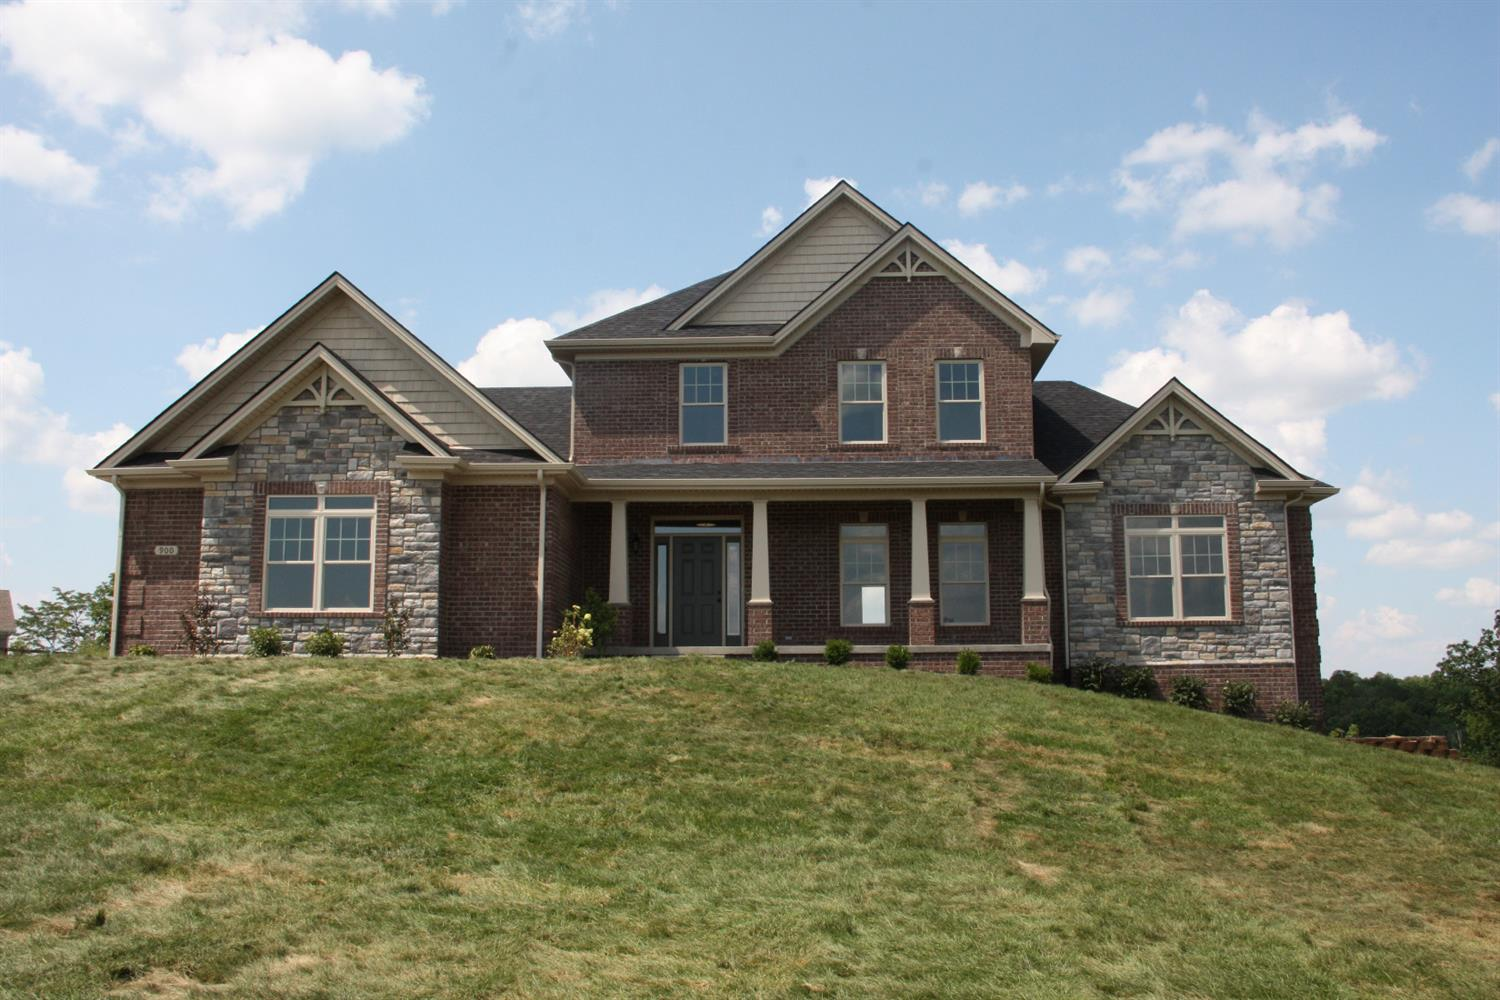 Home For Sale at 408 Quail Creek Ct, Richmond, KY 40475